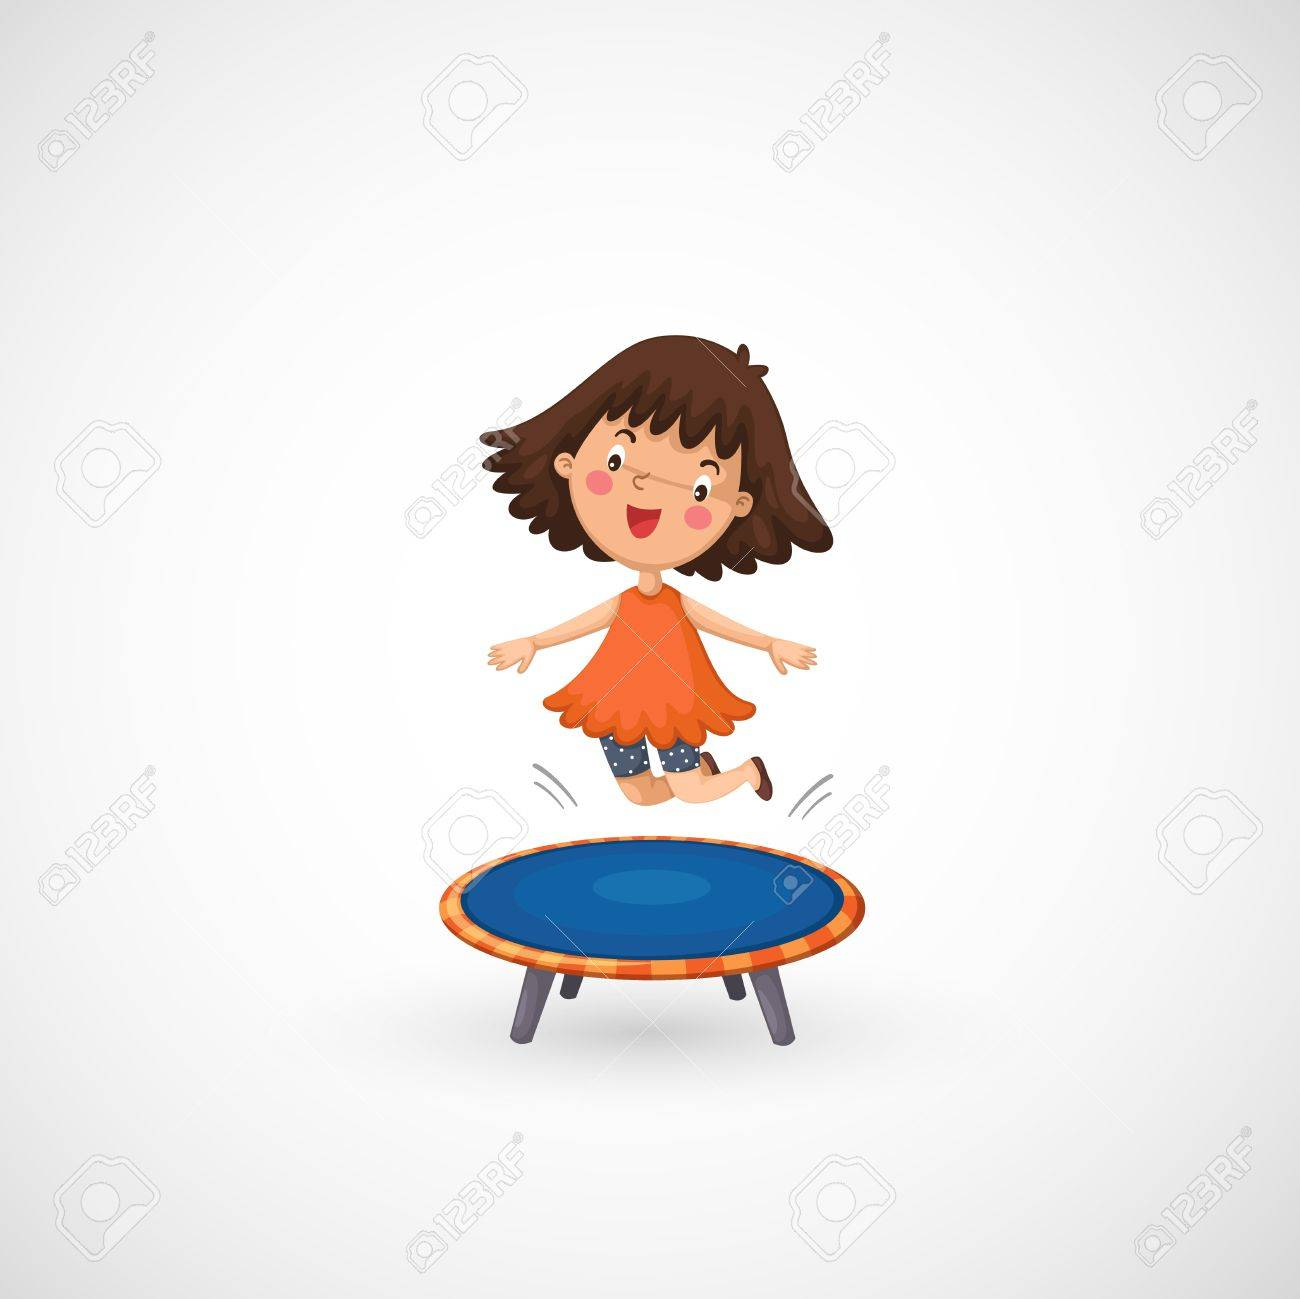 illustration of isolated a girl jumping on a trampoline.